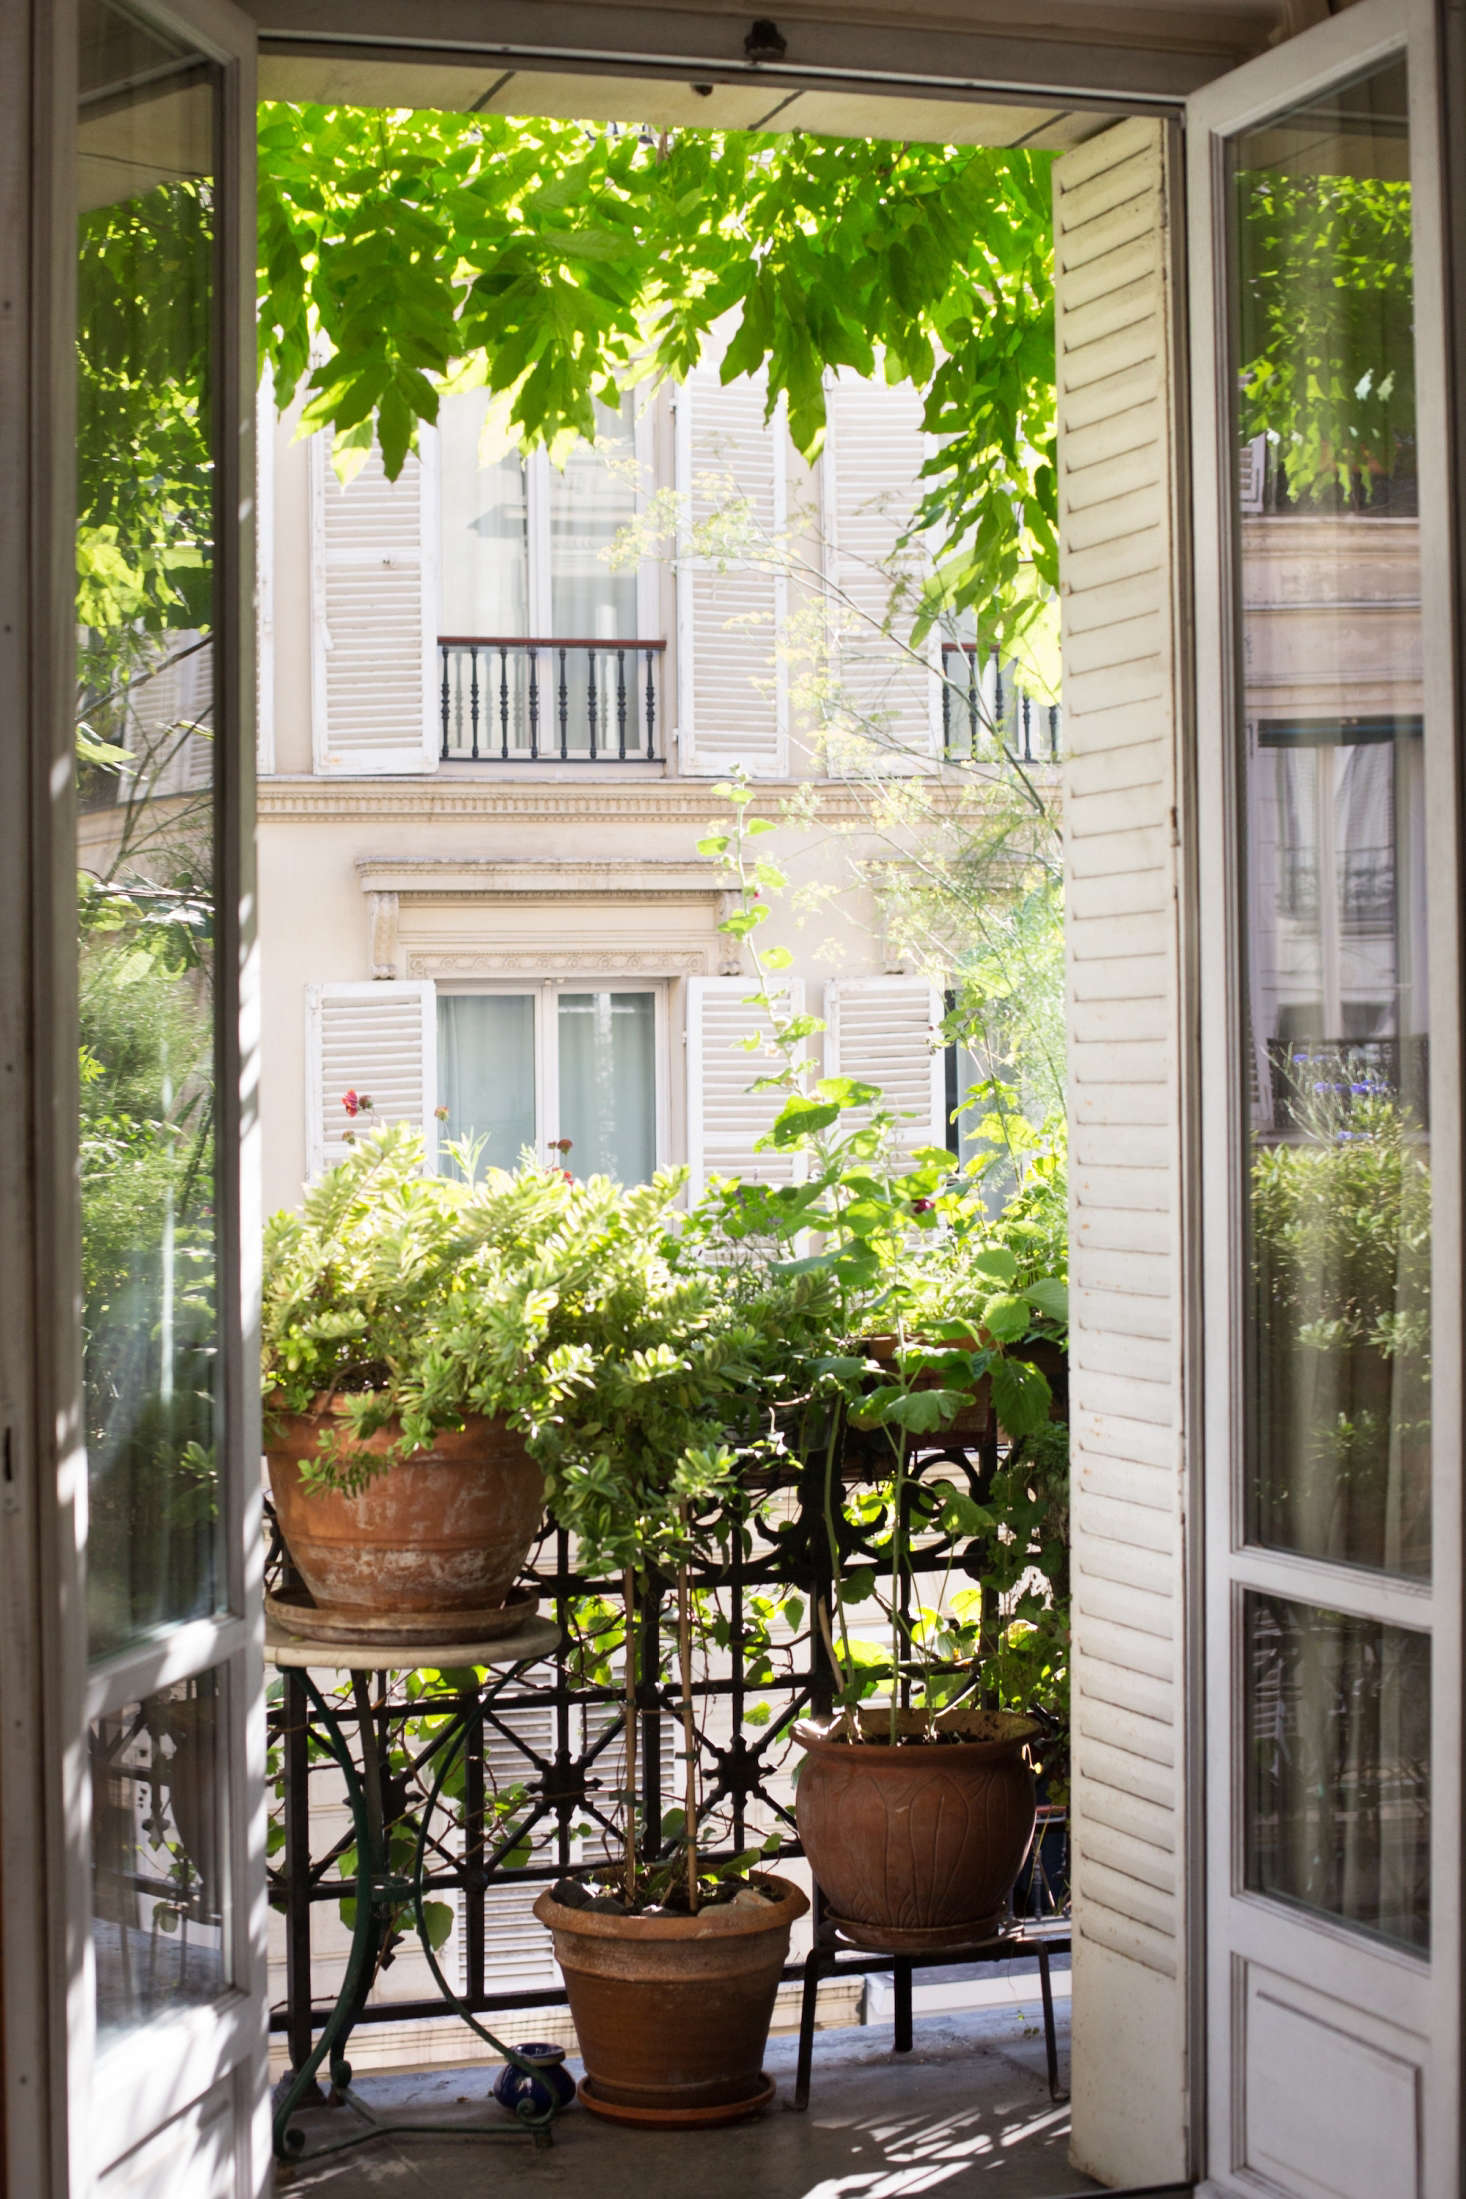 A pair of French doors swing open to connect the flat's living room to the balcony garden.